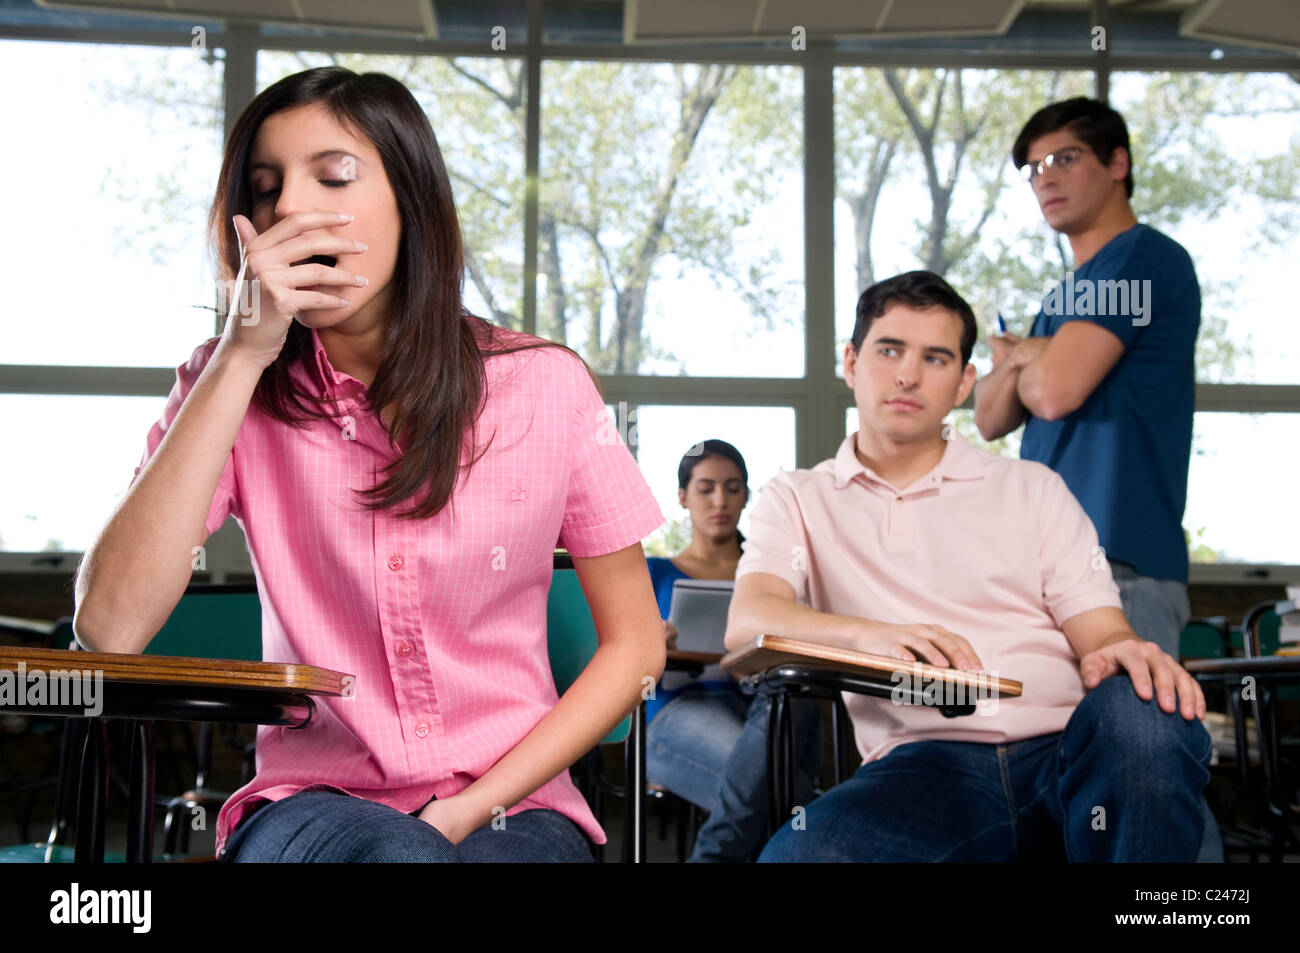 Female student yawning in class - Stock Image